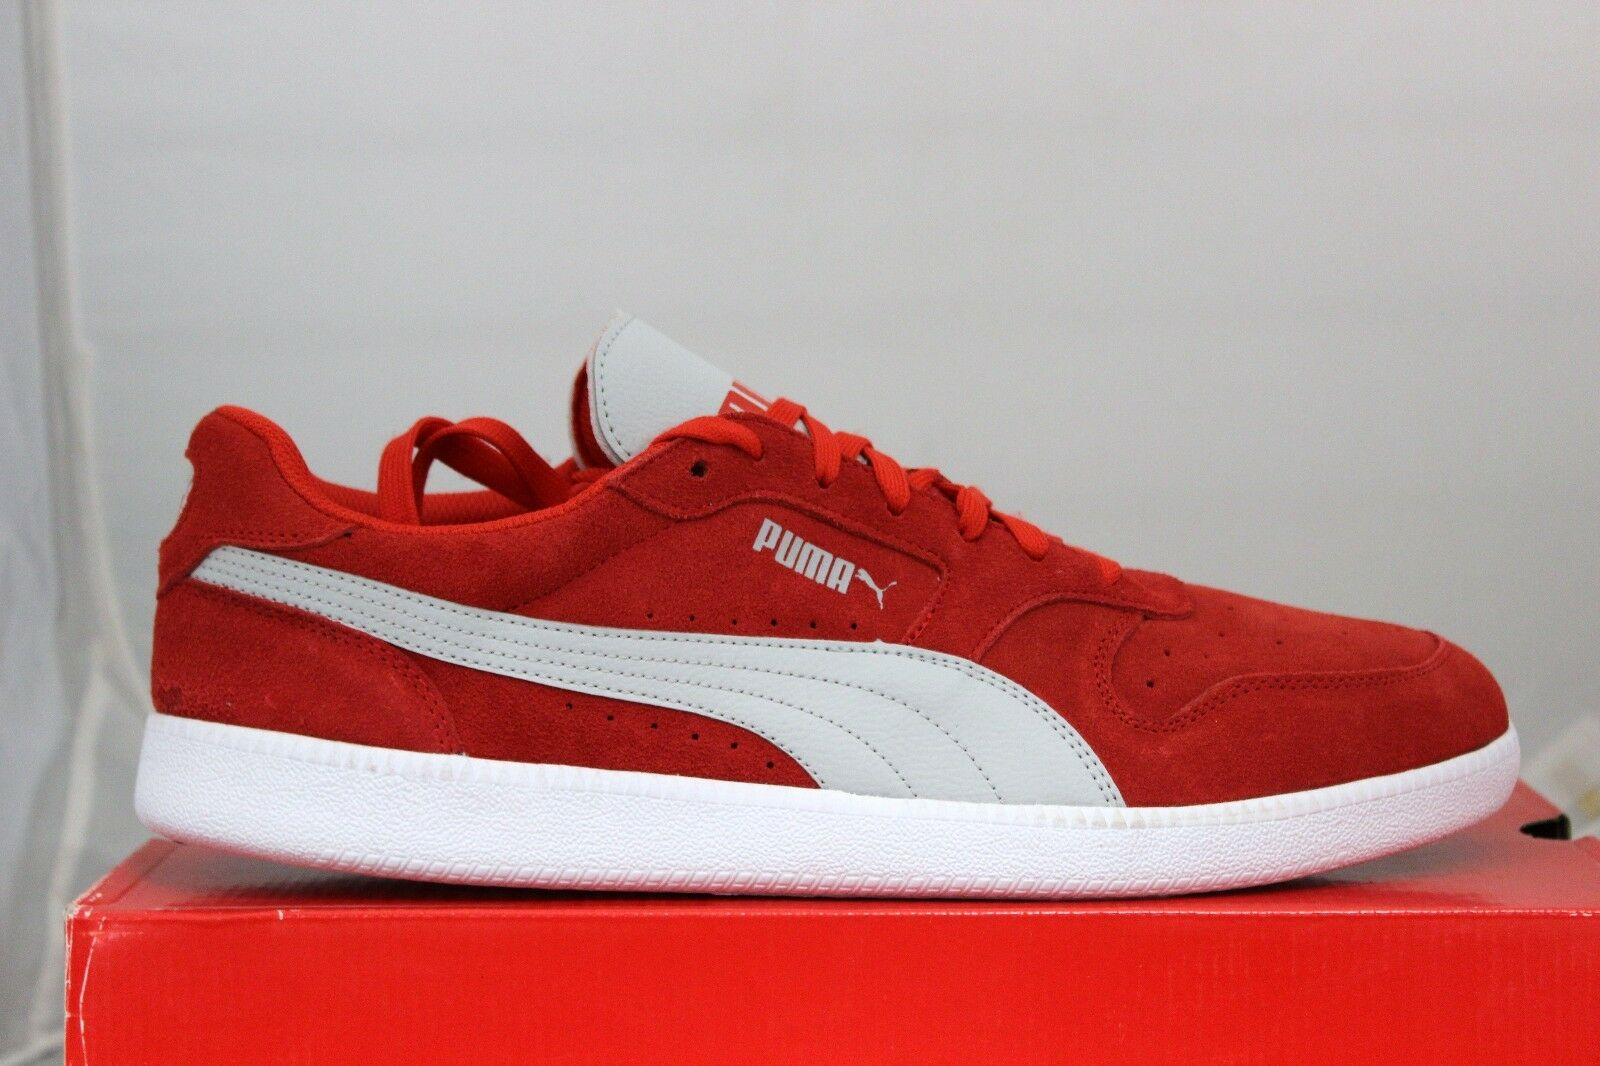 Puma icra trainer sd 35674106 alto rischio rischio rischio red gray violet in scatola ebbb80